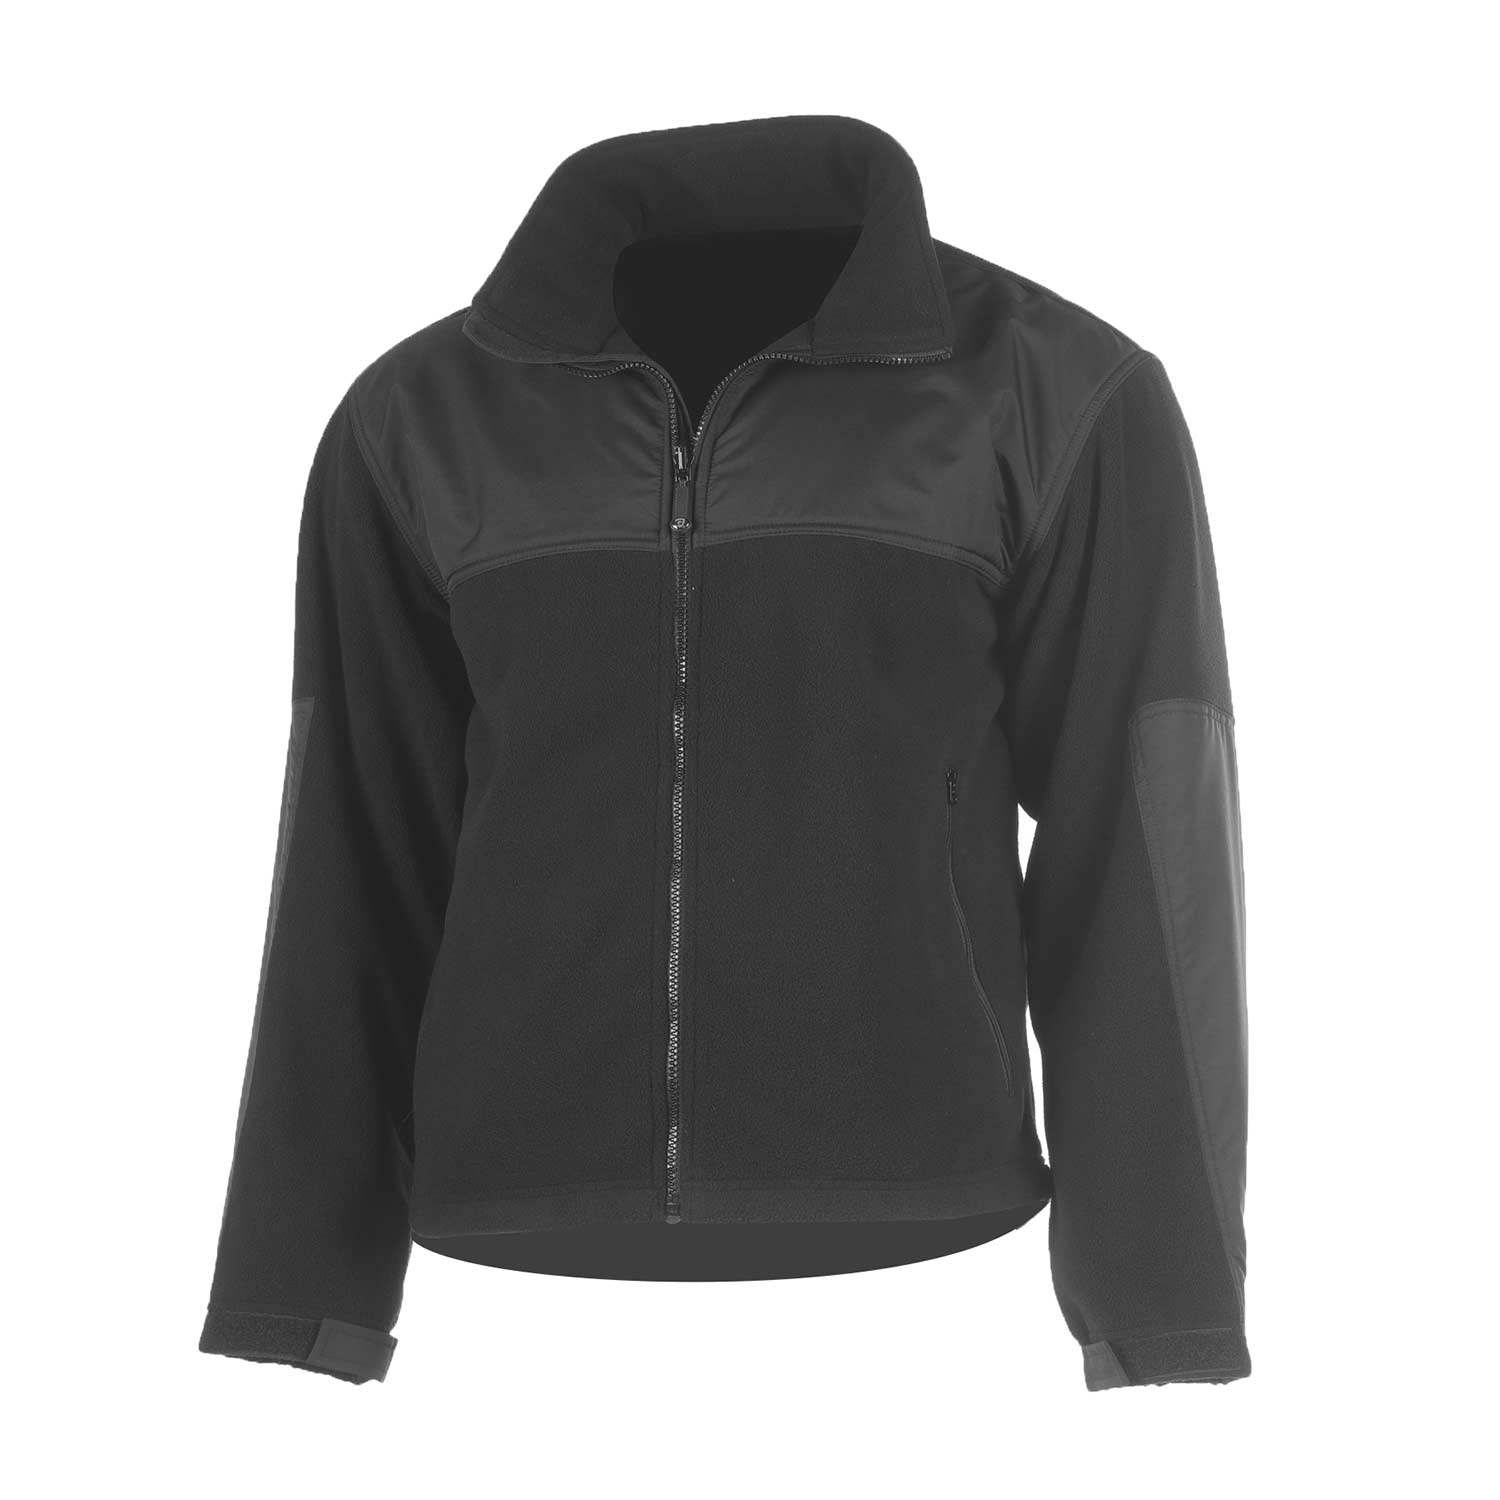 Galls Performance Fleece Jacket